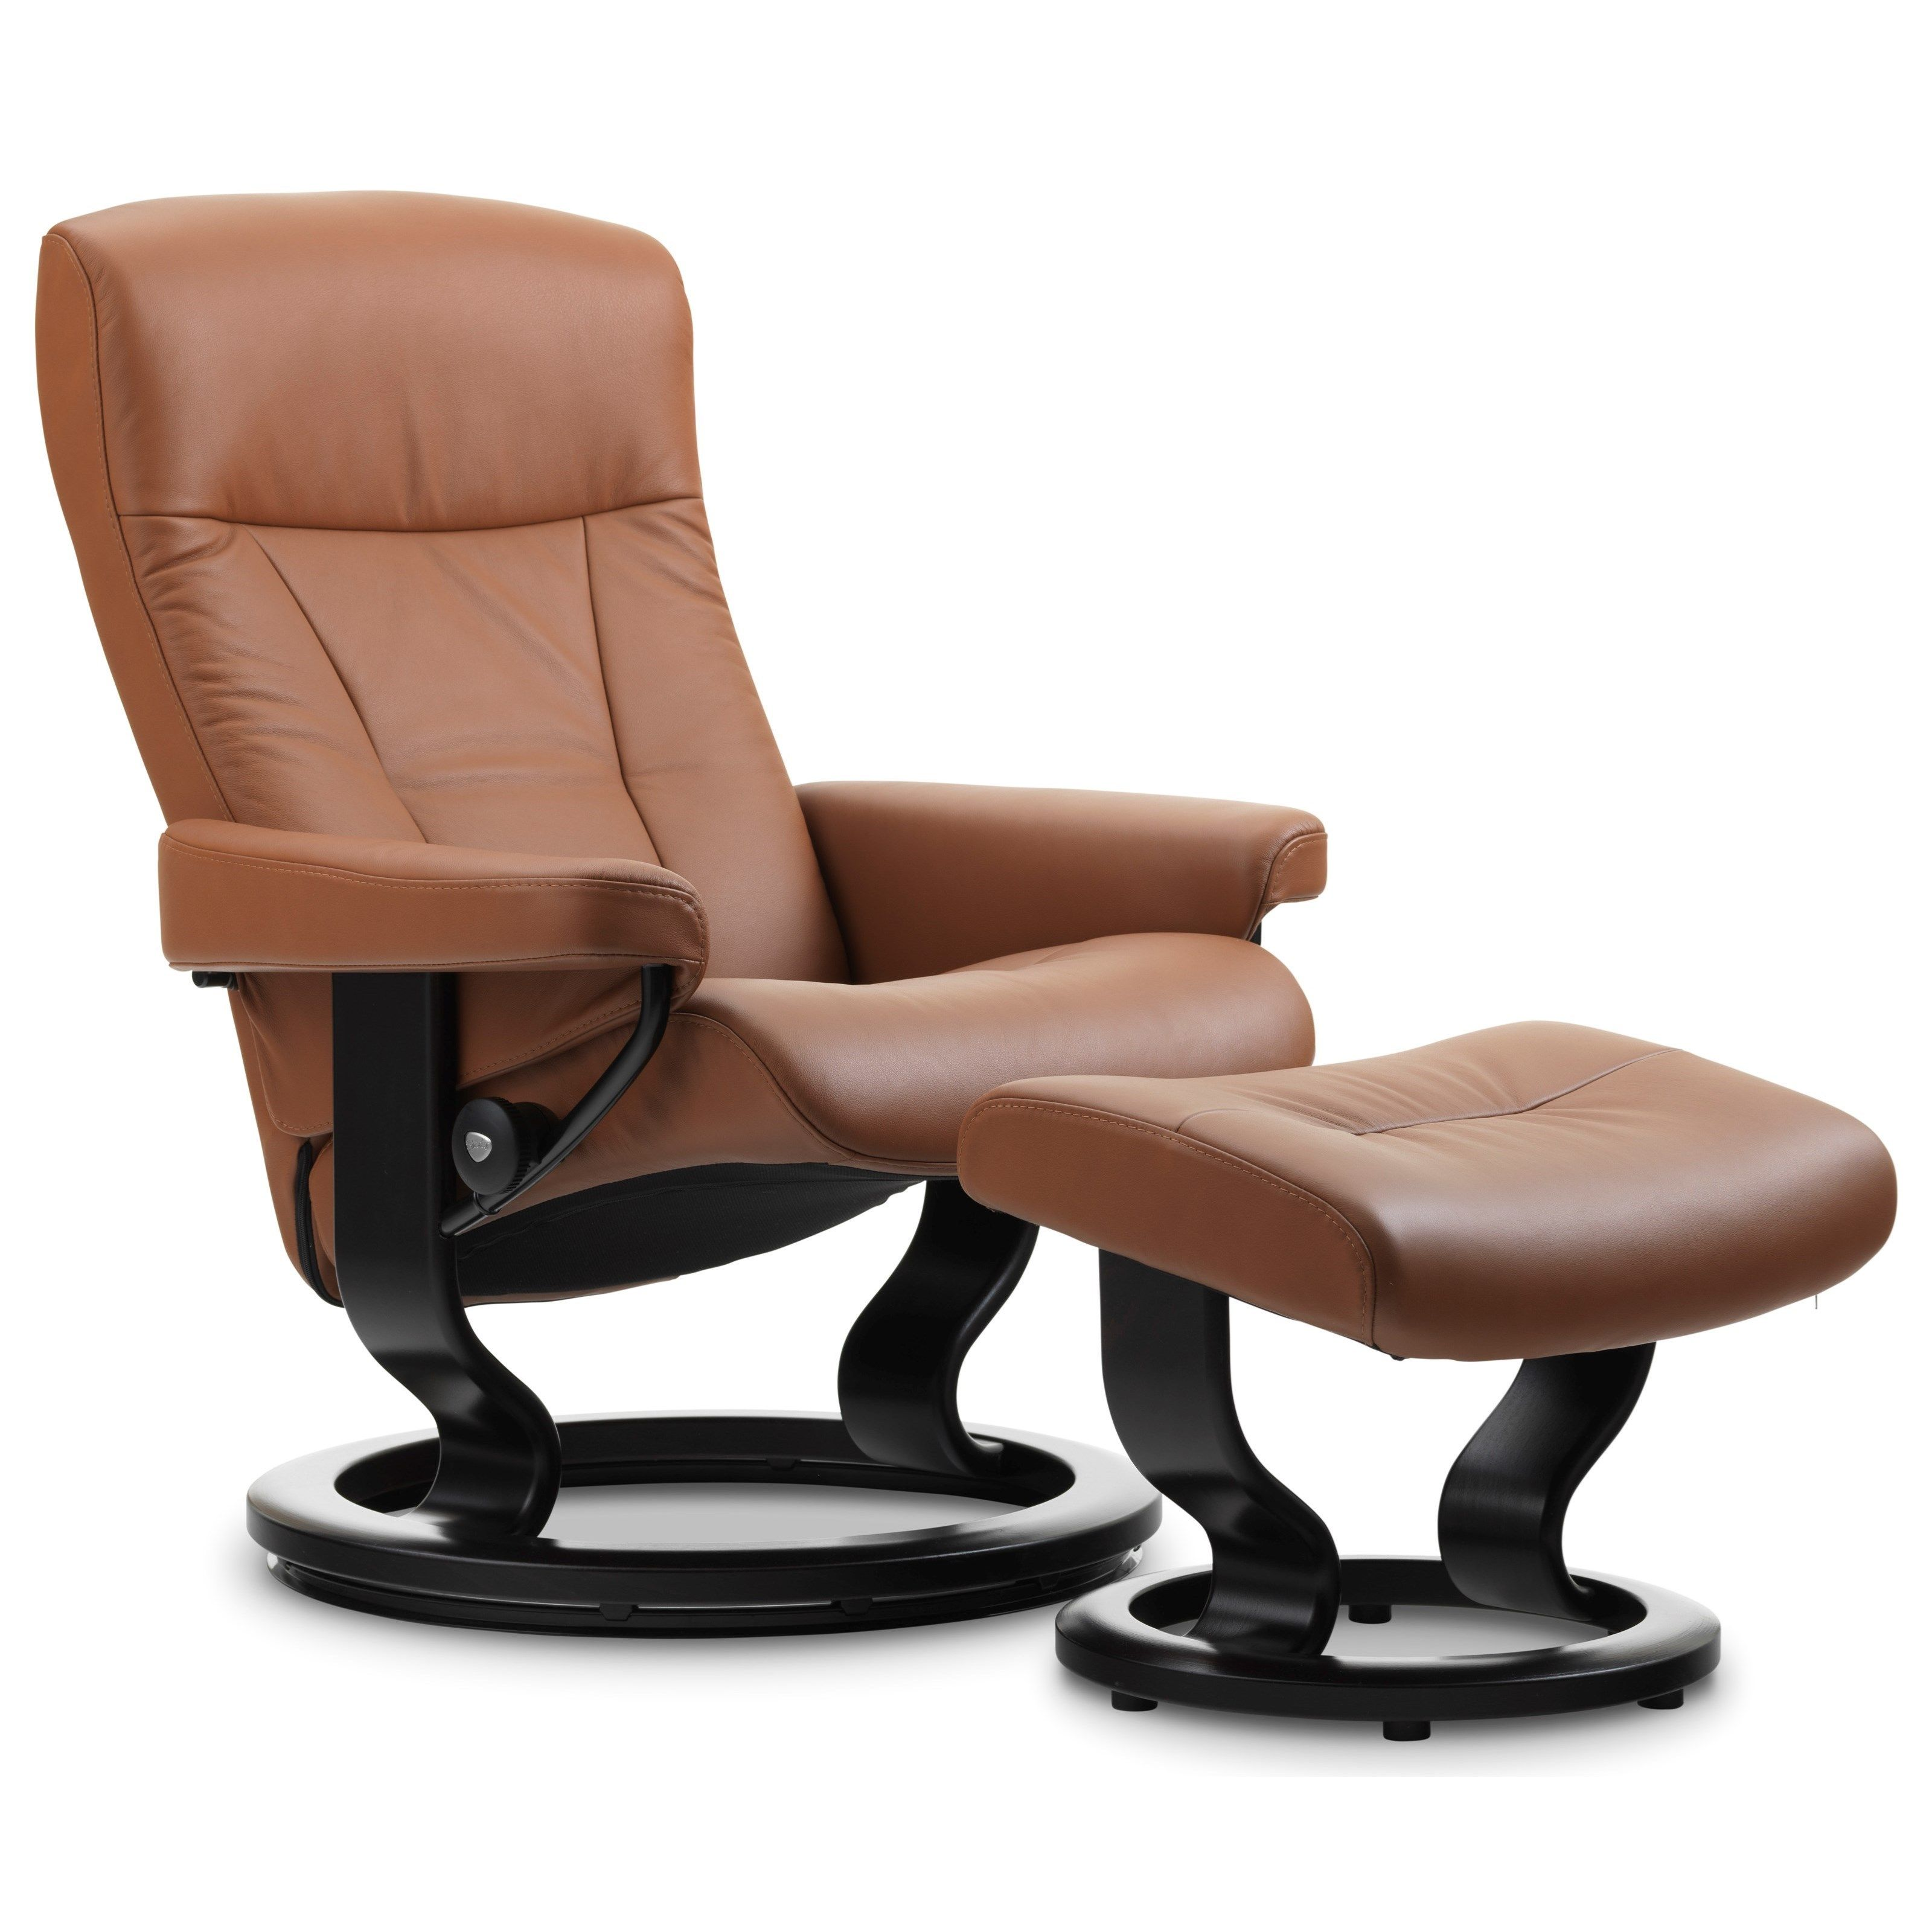 Stressless Recliners Medium Jazz Recliner and Ottoman by